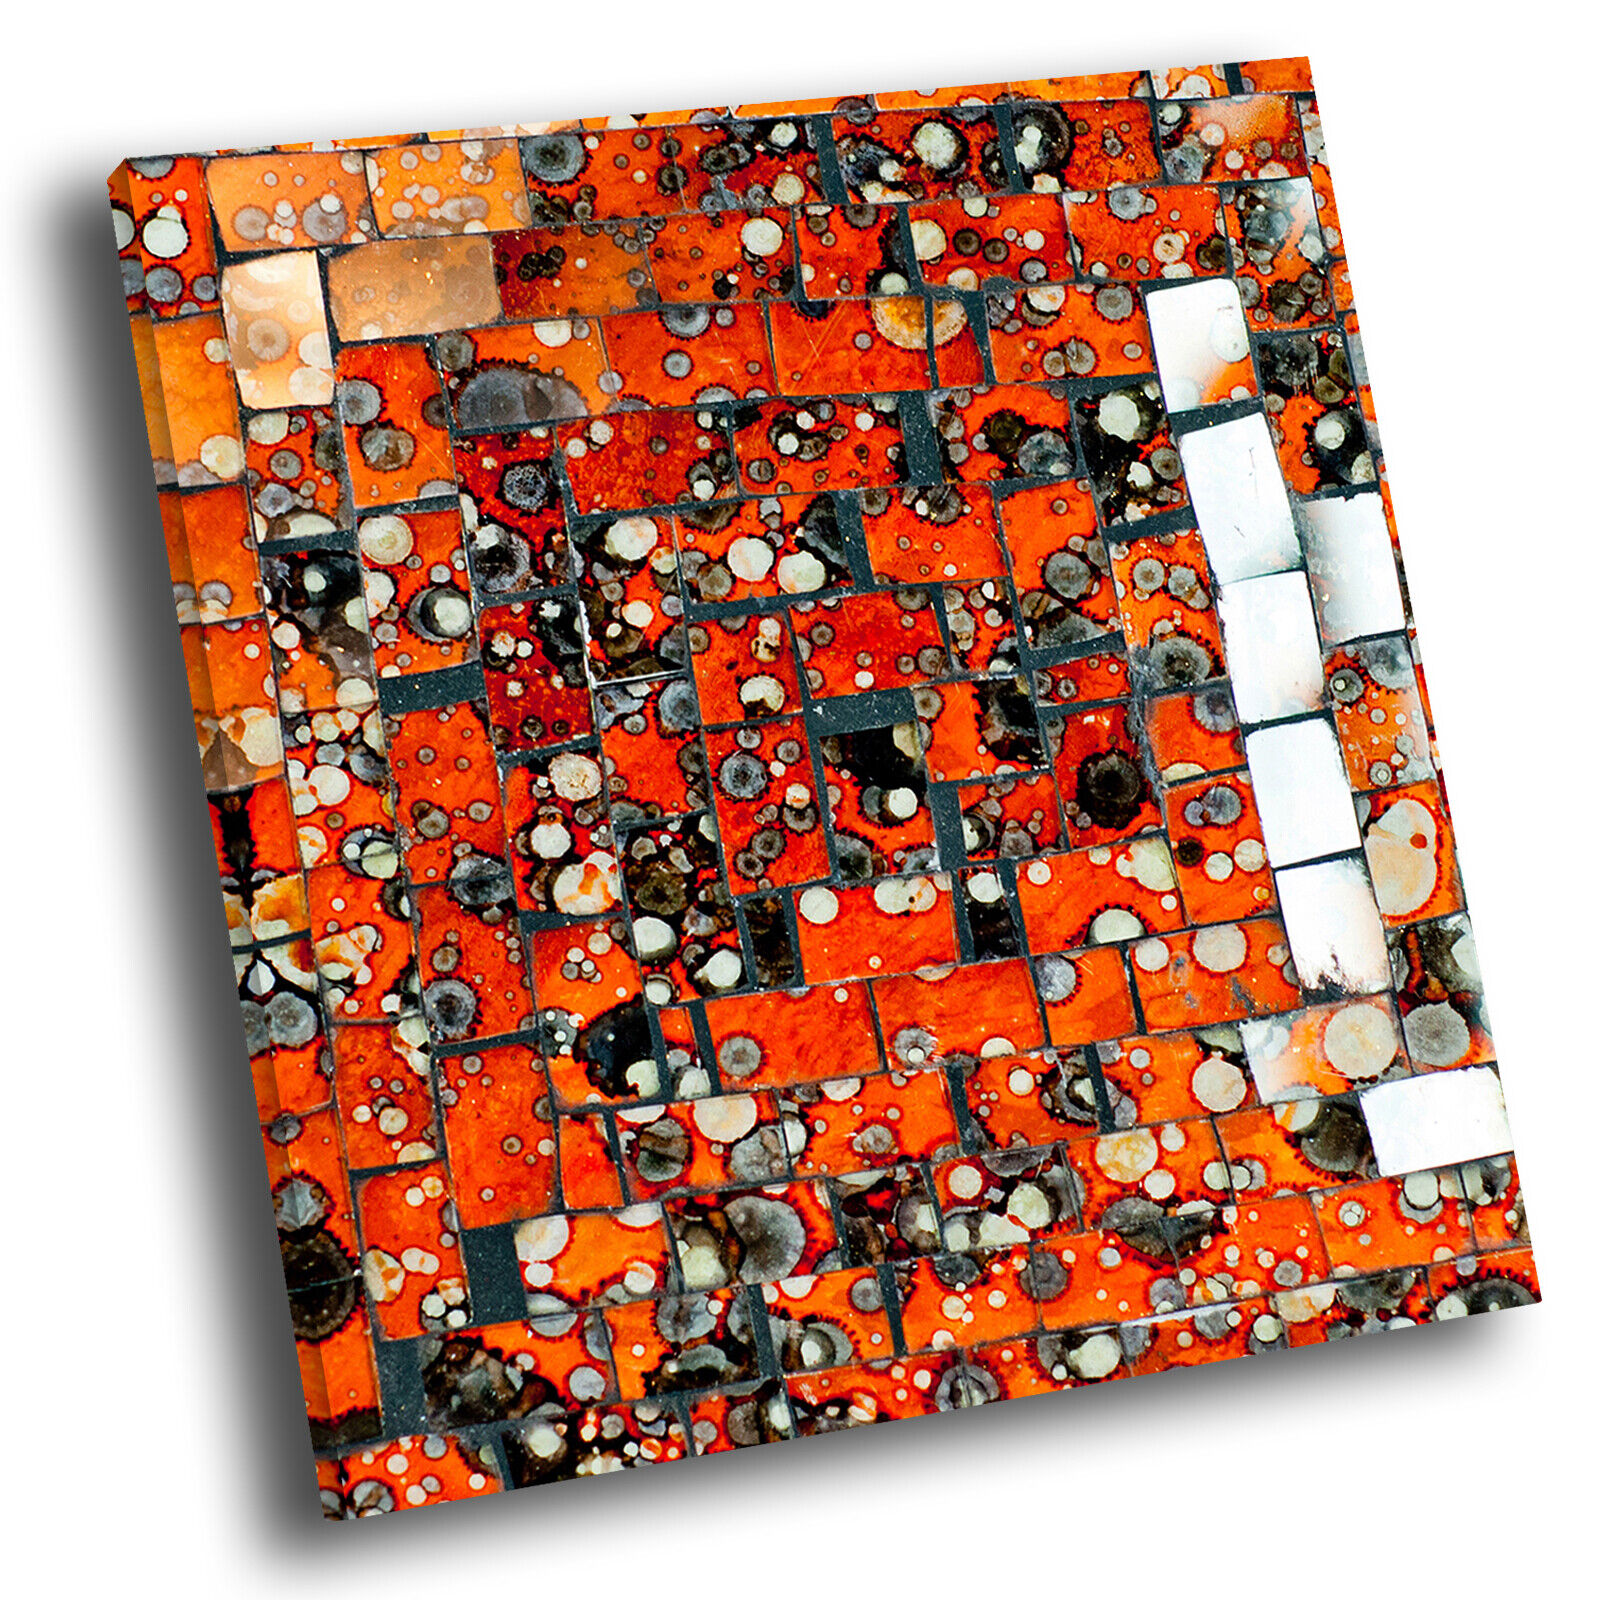 Retro Orange Weiß Square Abstract Photo Canvas Wall Art Large Picture Prints